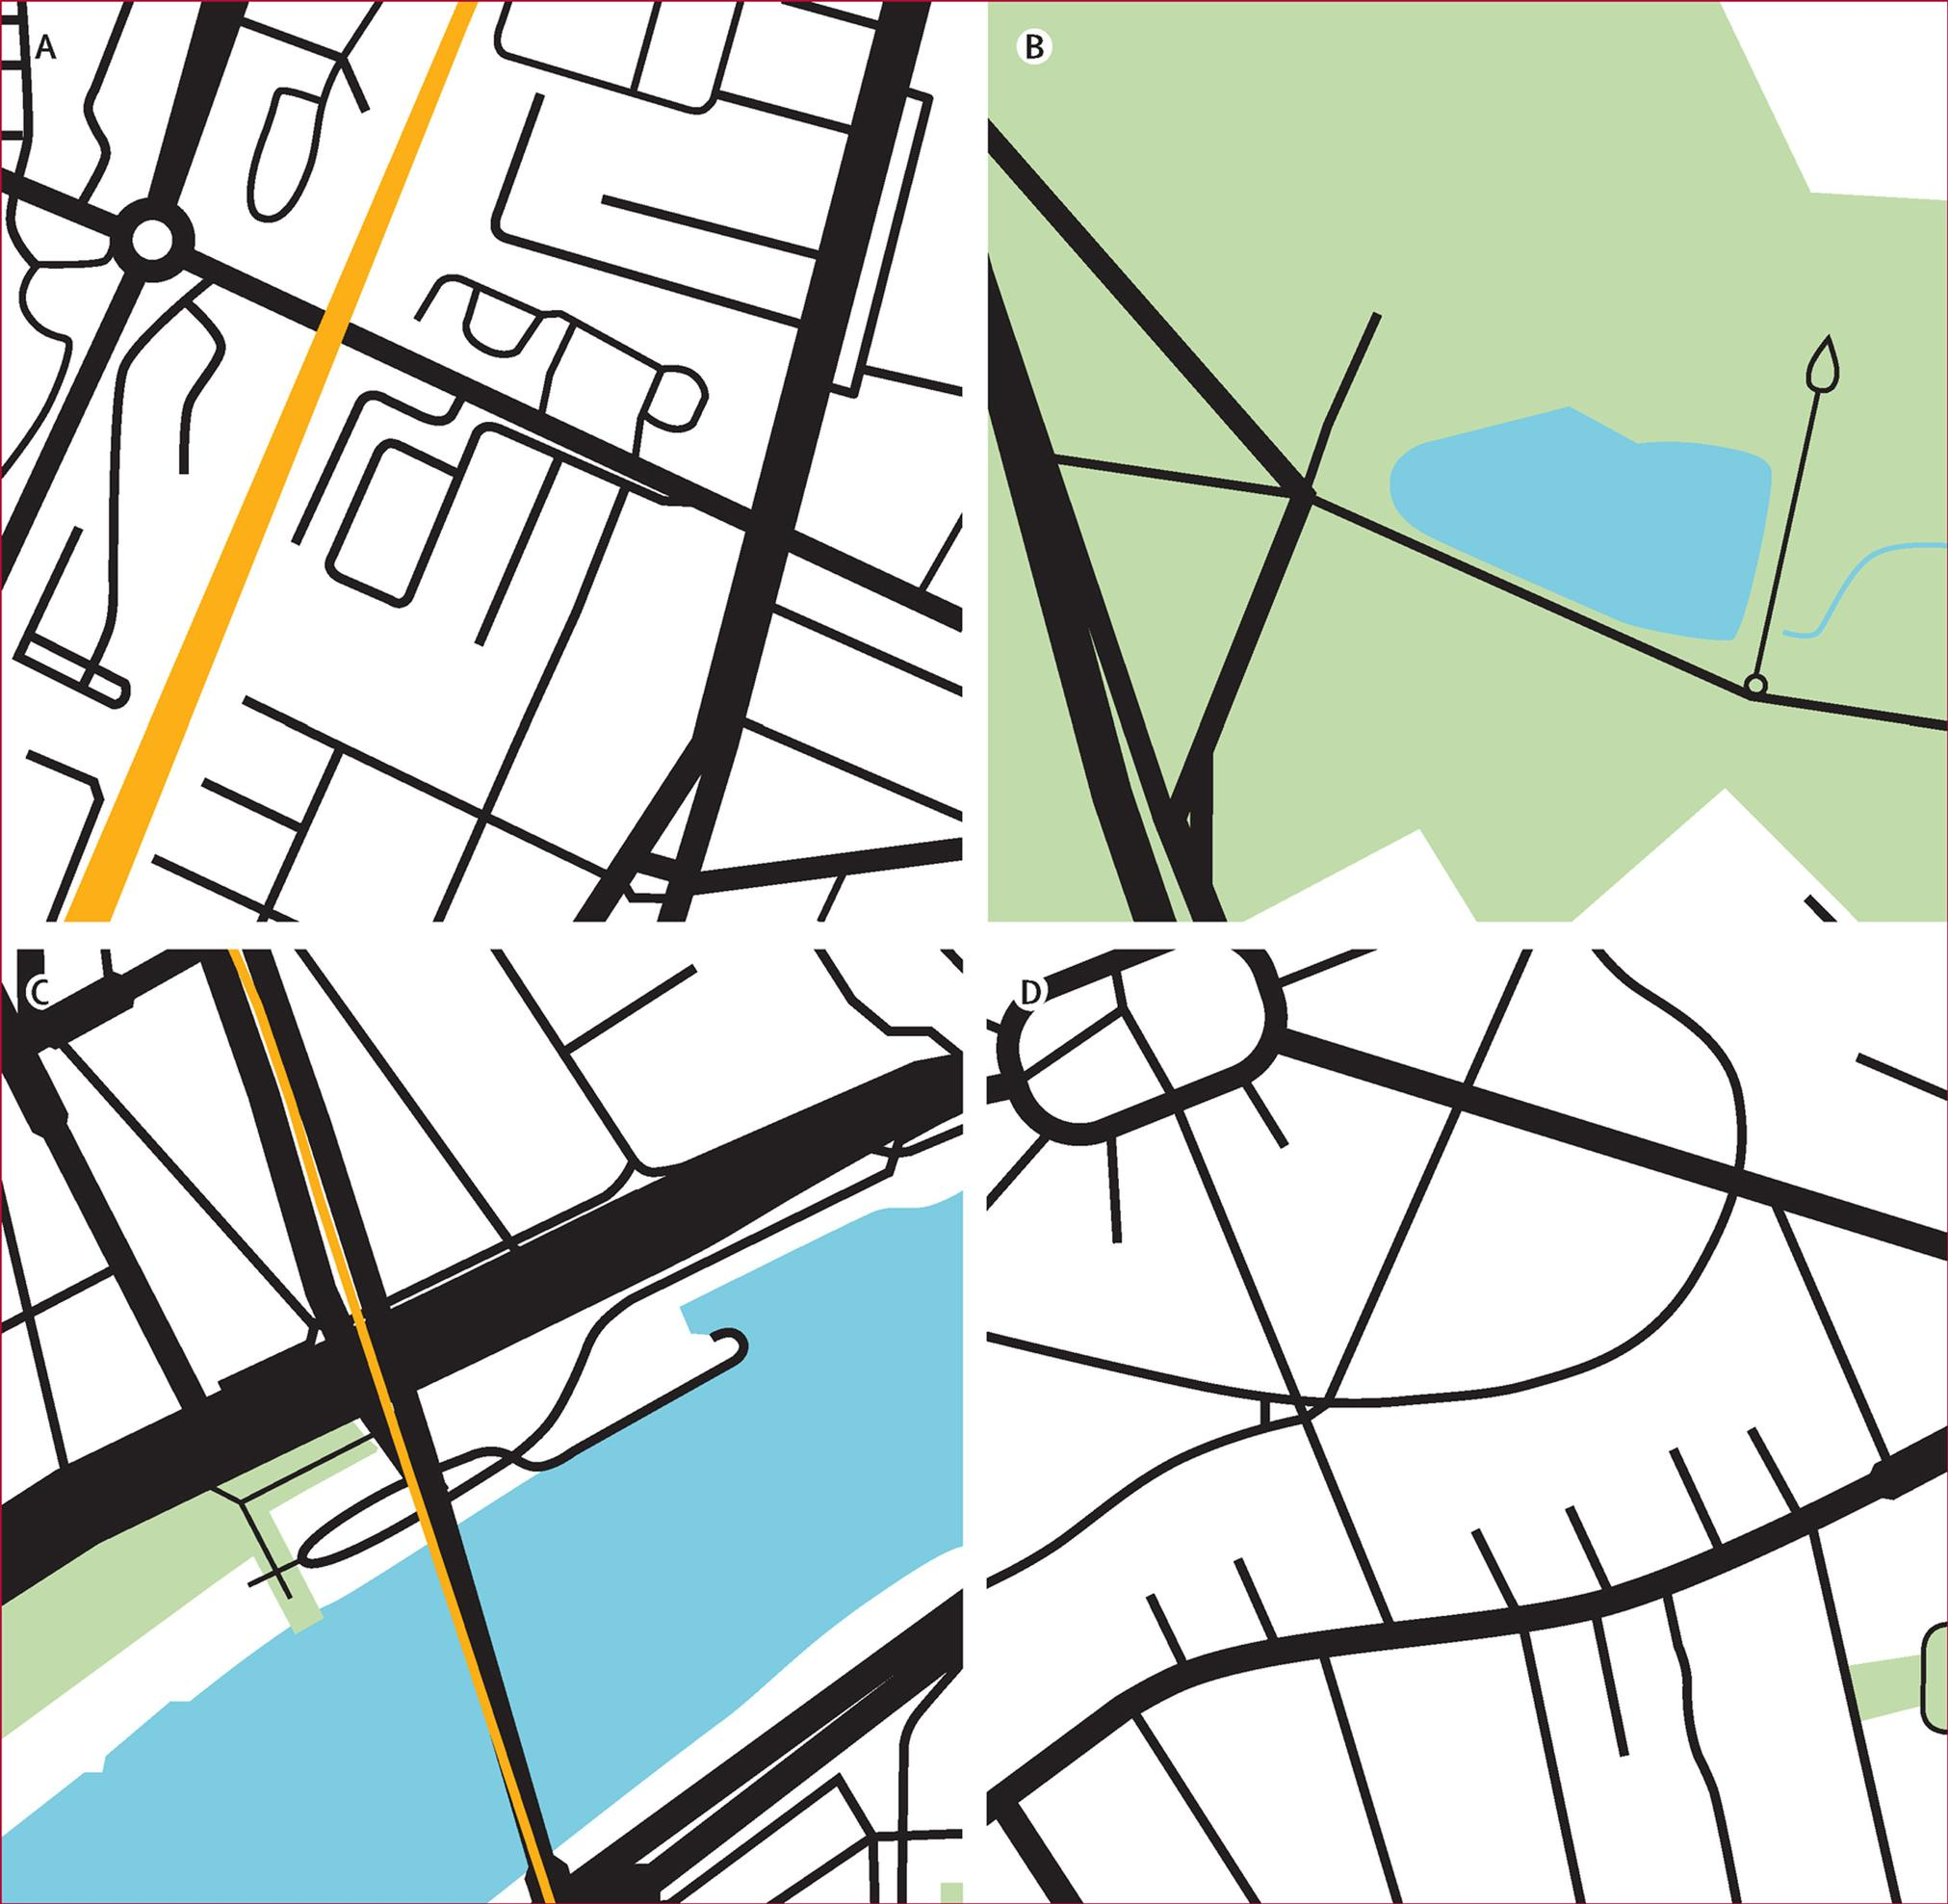 Four sample images for Paris, France. The images show combinations of rail transit networks (orange), green space (green), water bodies (blue), and road infrastructure (black). Jason Thompson et al. The Lancet Planetary Health